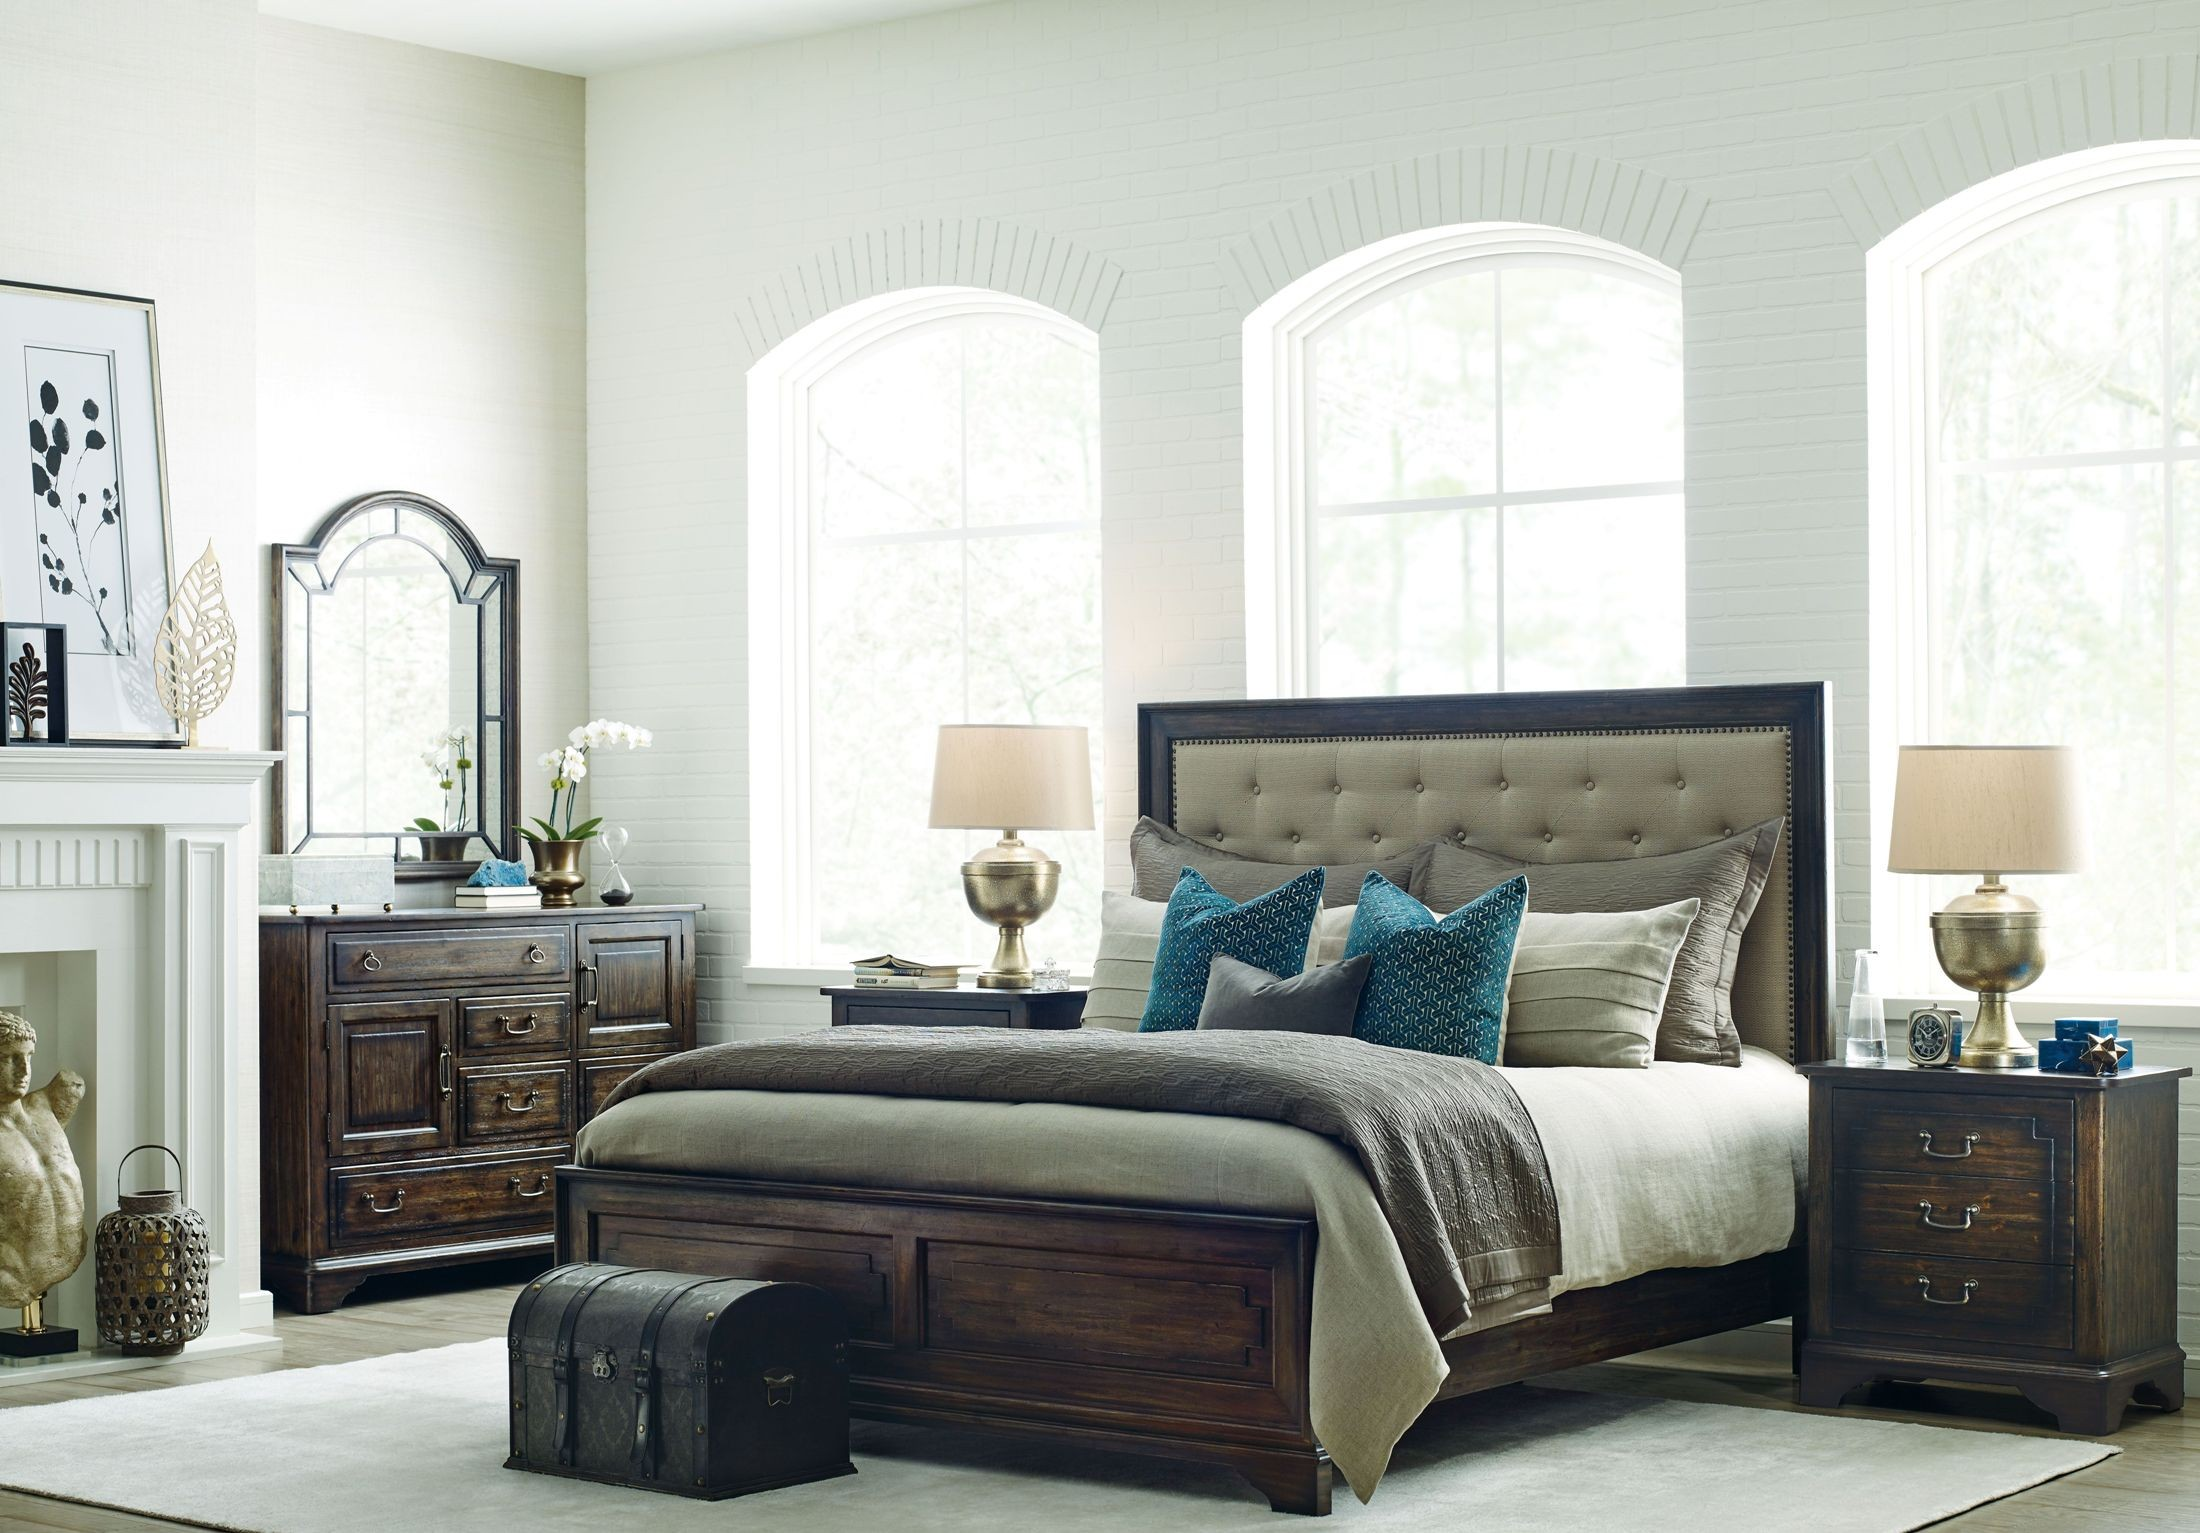 Bedroom Sets 300 28 Images Cheap Bedroom Furniture Sets Under 300 Modern Ikea Cheap Queen